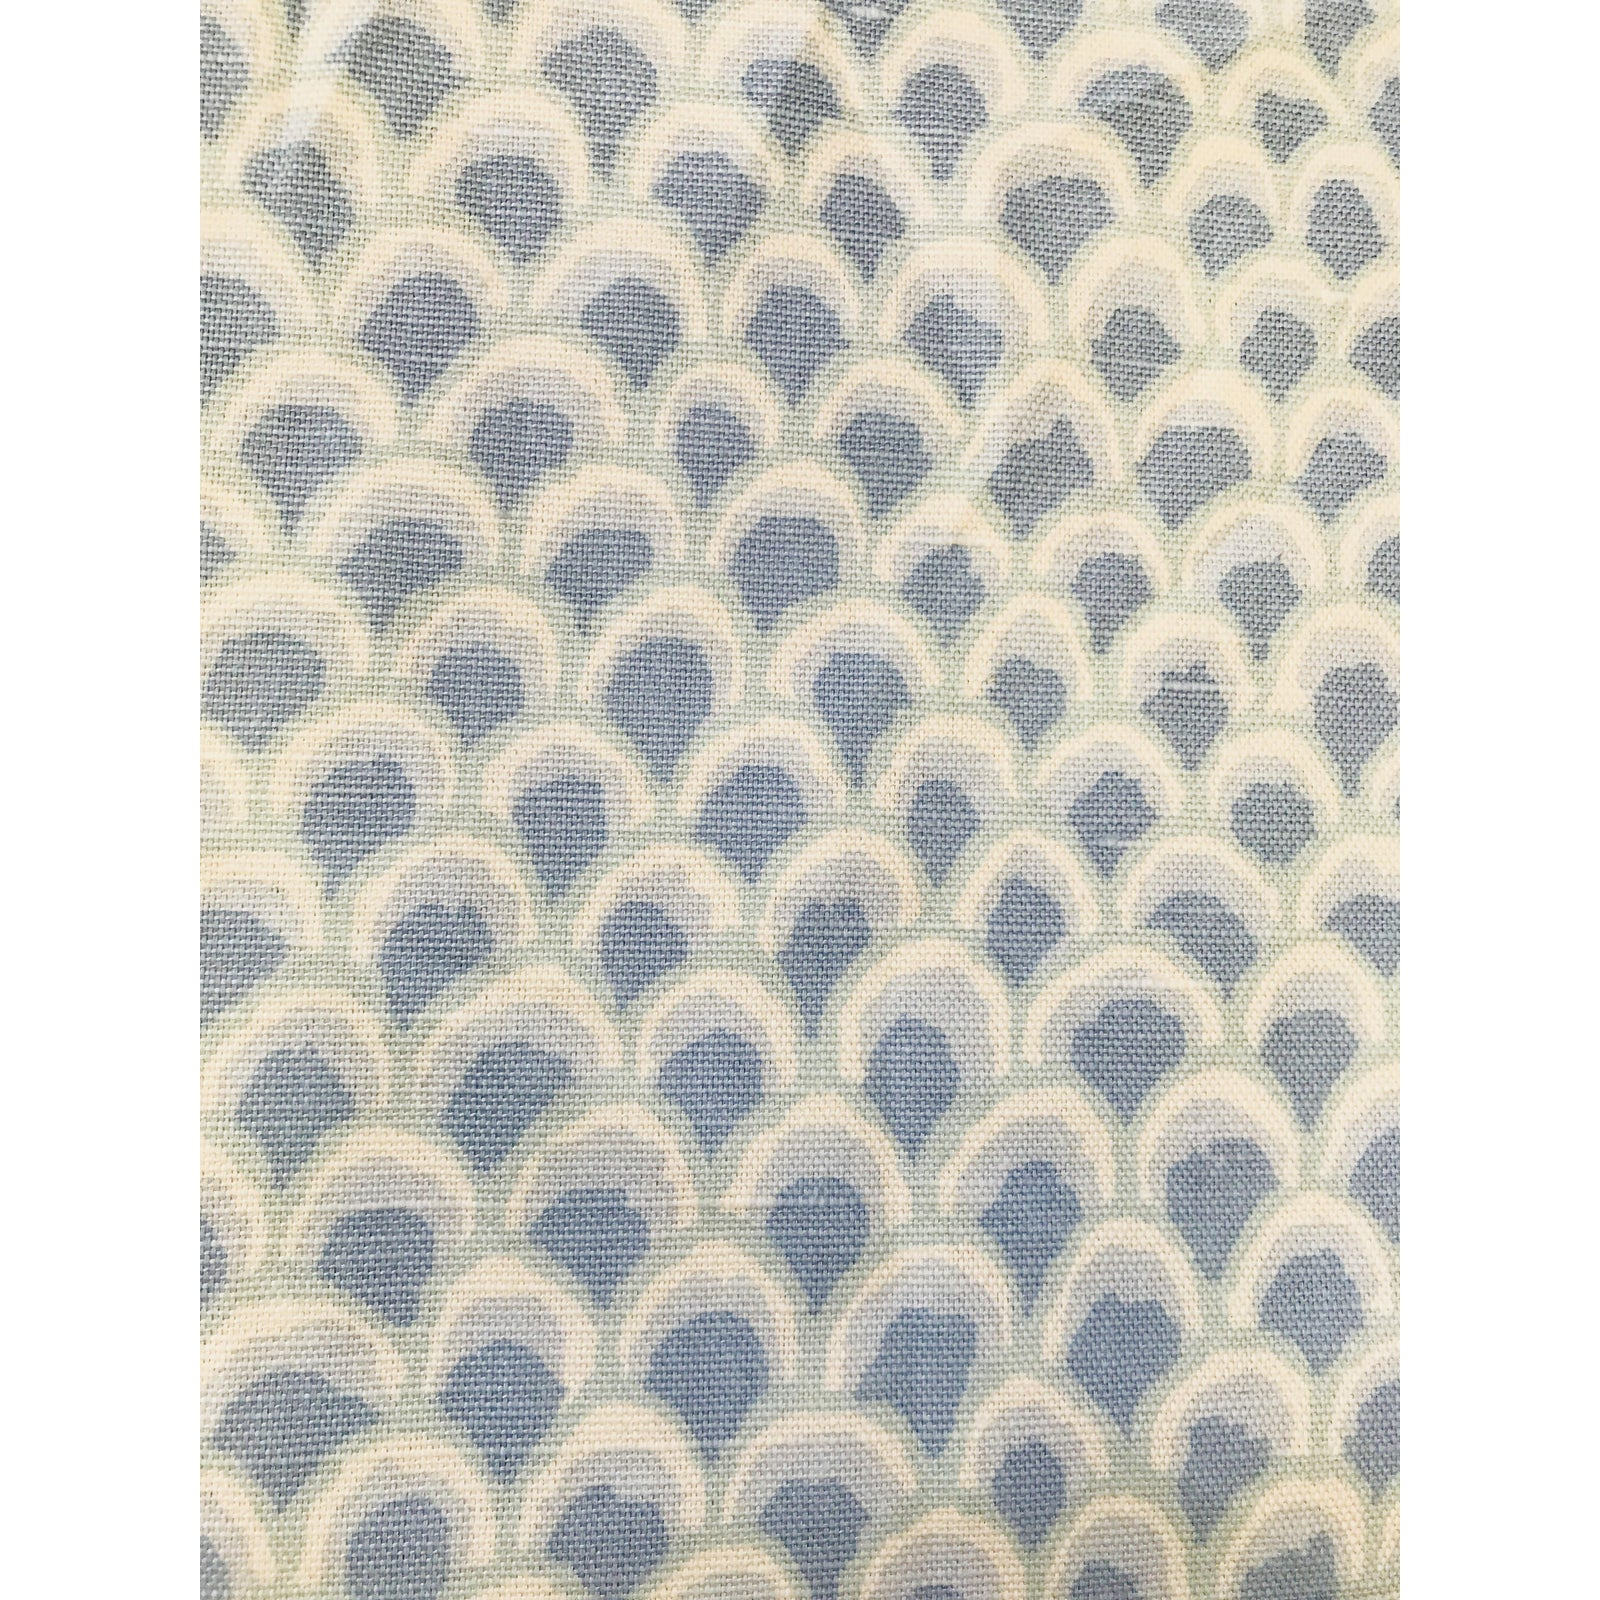 fabric barns width fit yard upholstery product barn chairish pottery floral by aspect height the